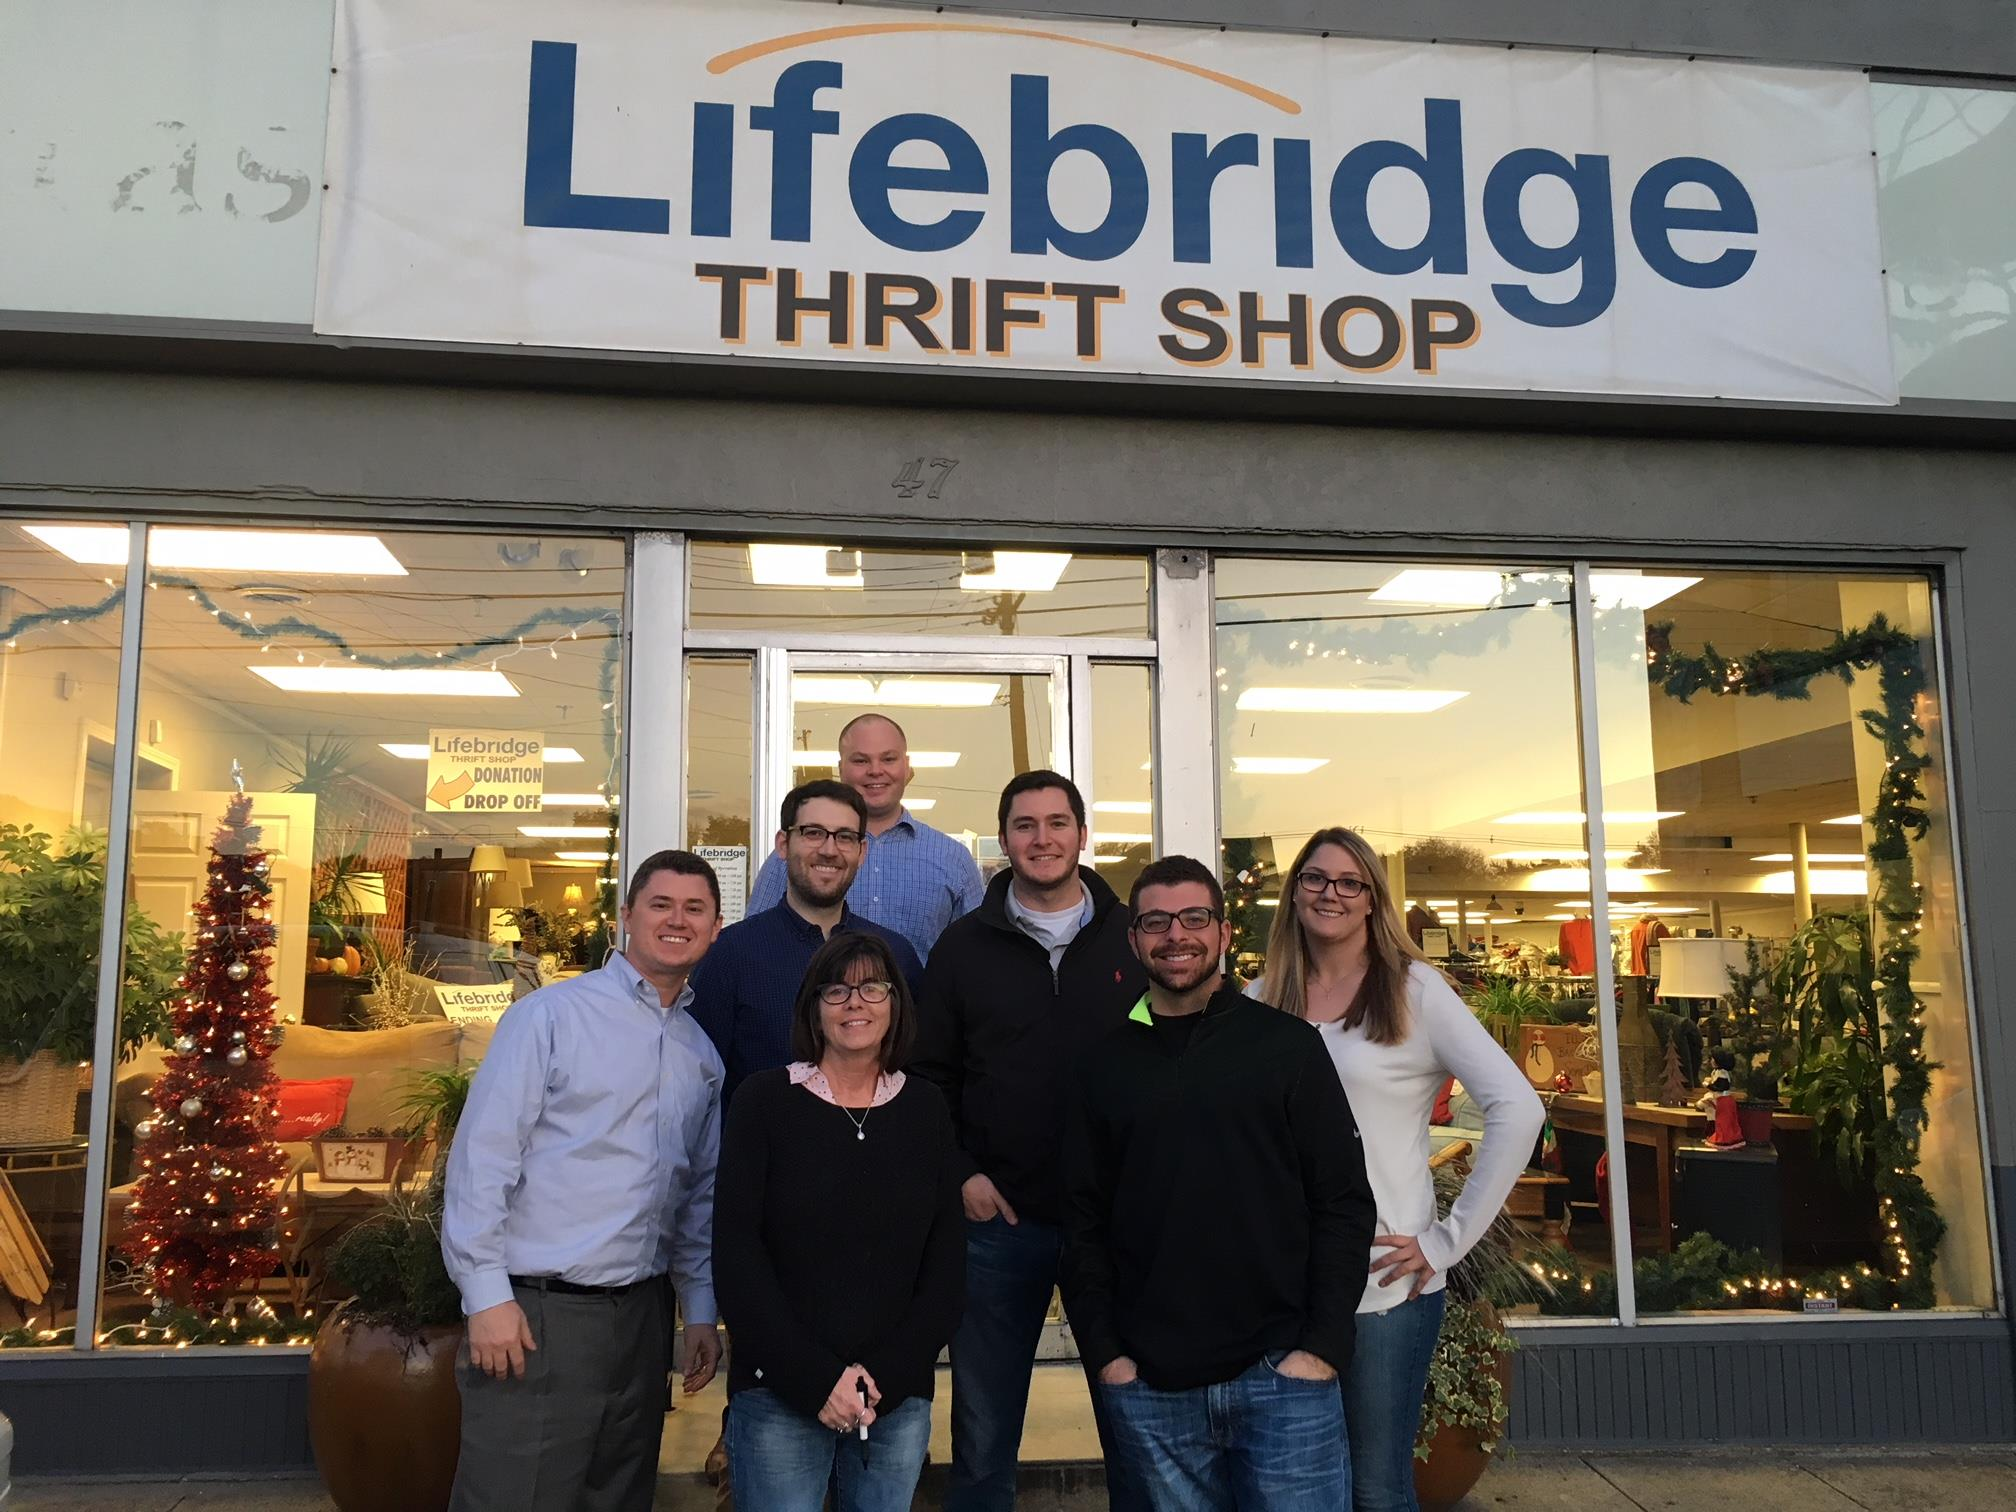 People standing in front of Lifebridge Thrift Shop in Salem, MA